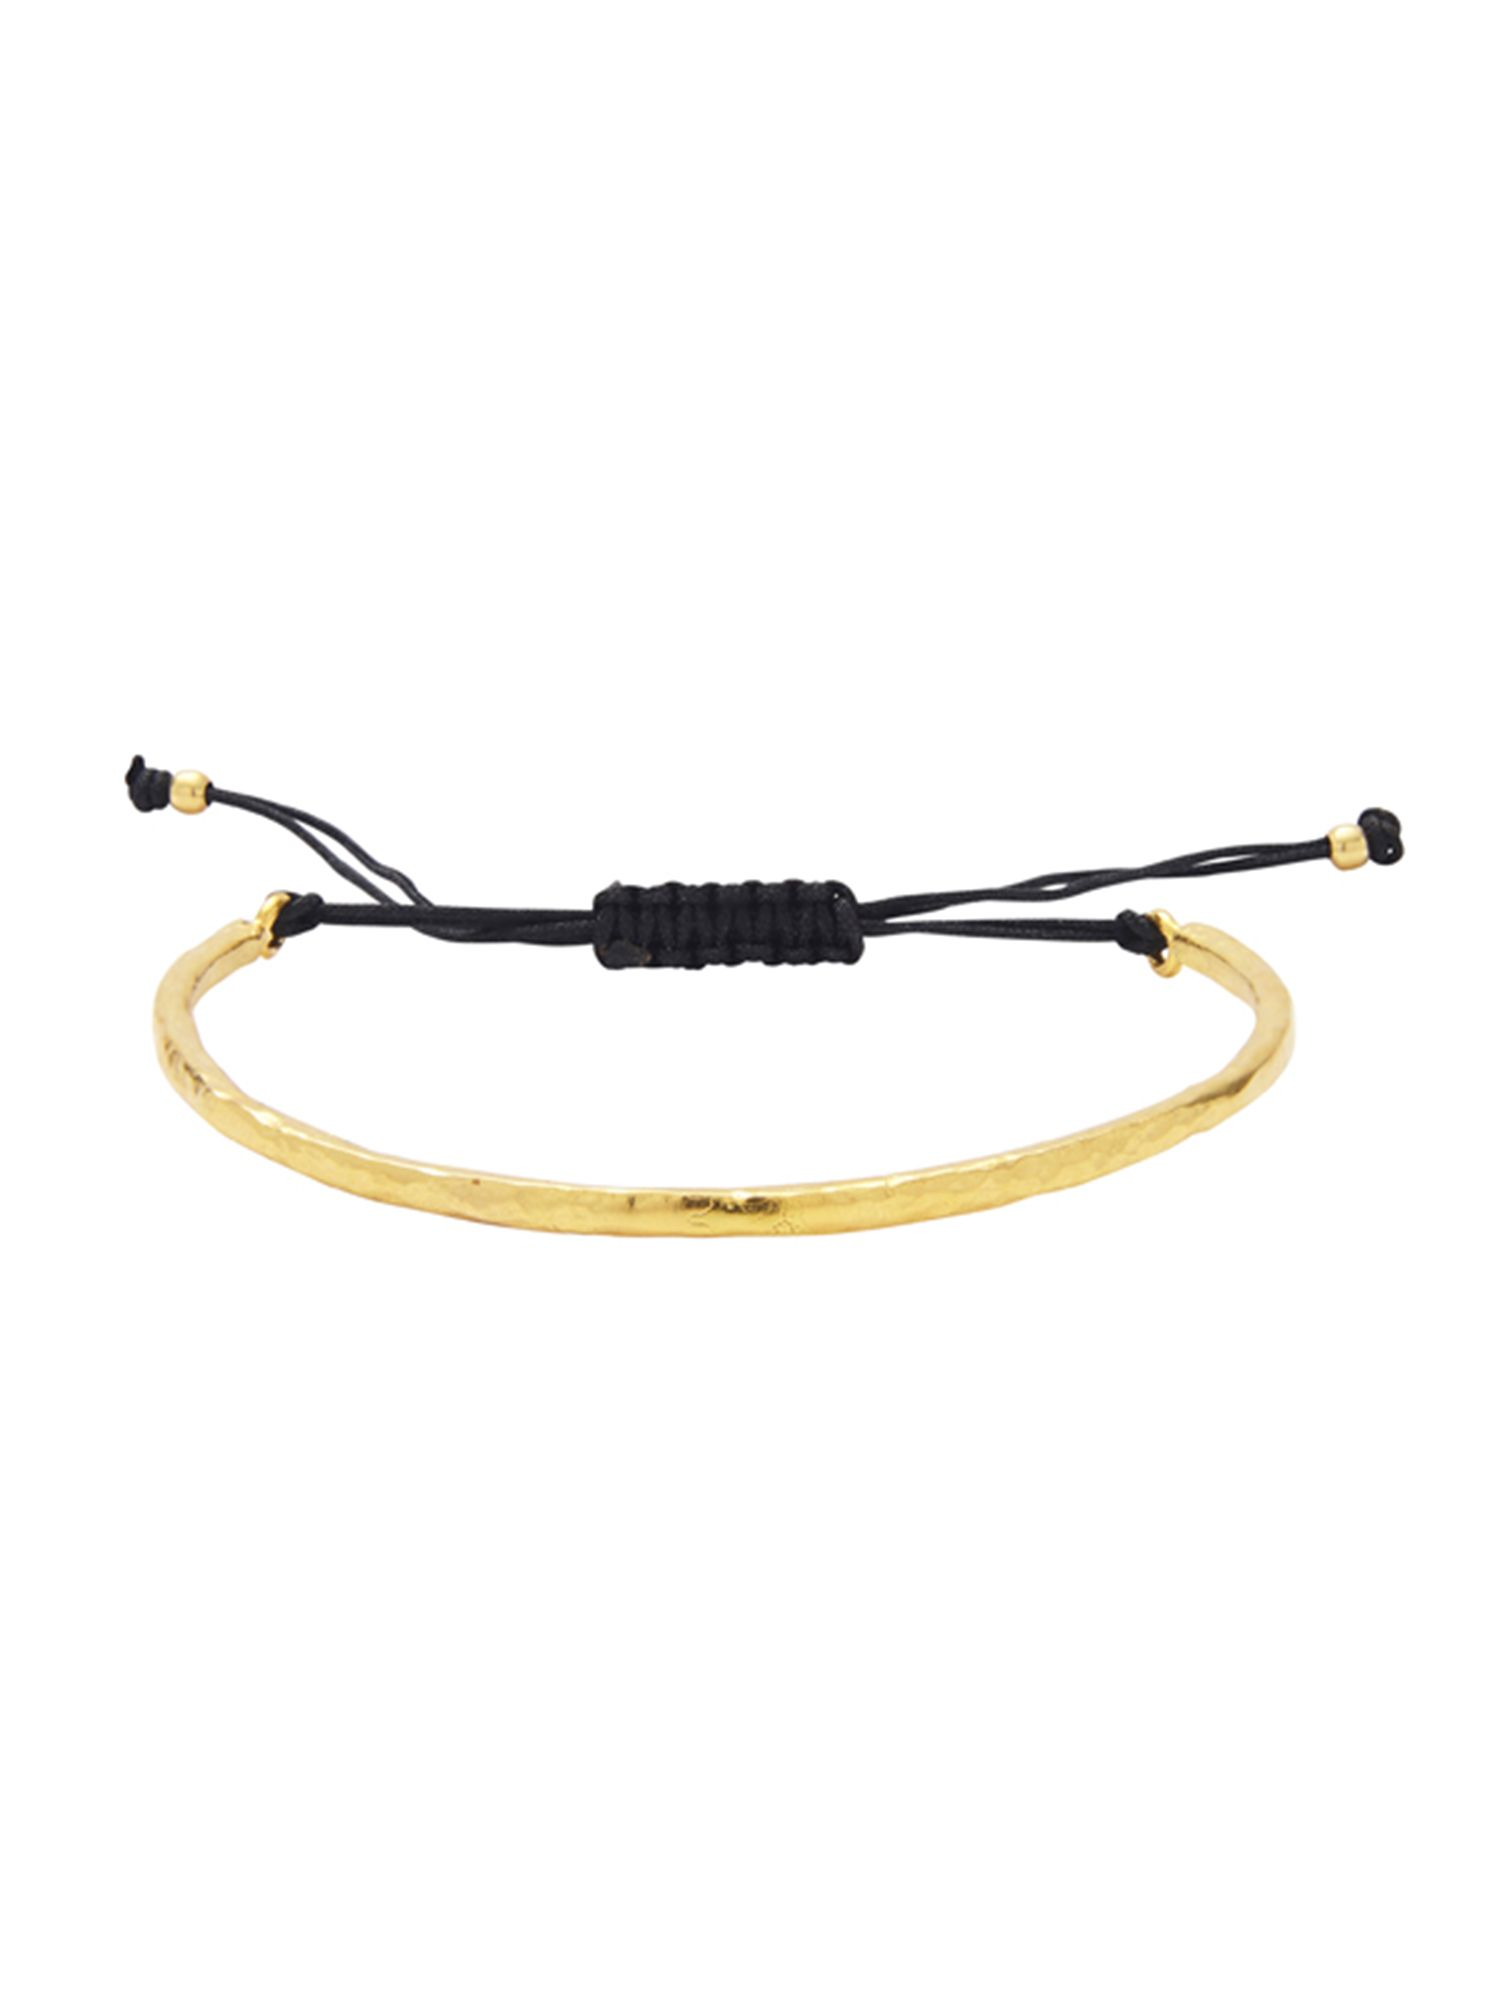 Ottoman Hands Ottoman Hands Gold and cord bracelet, N/A